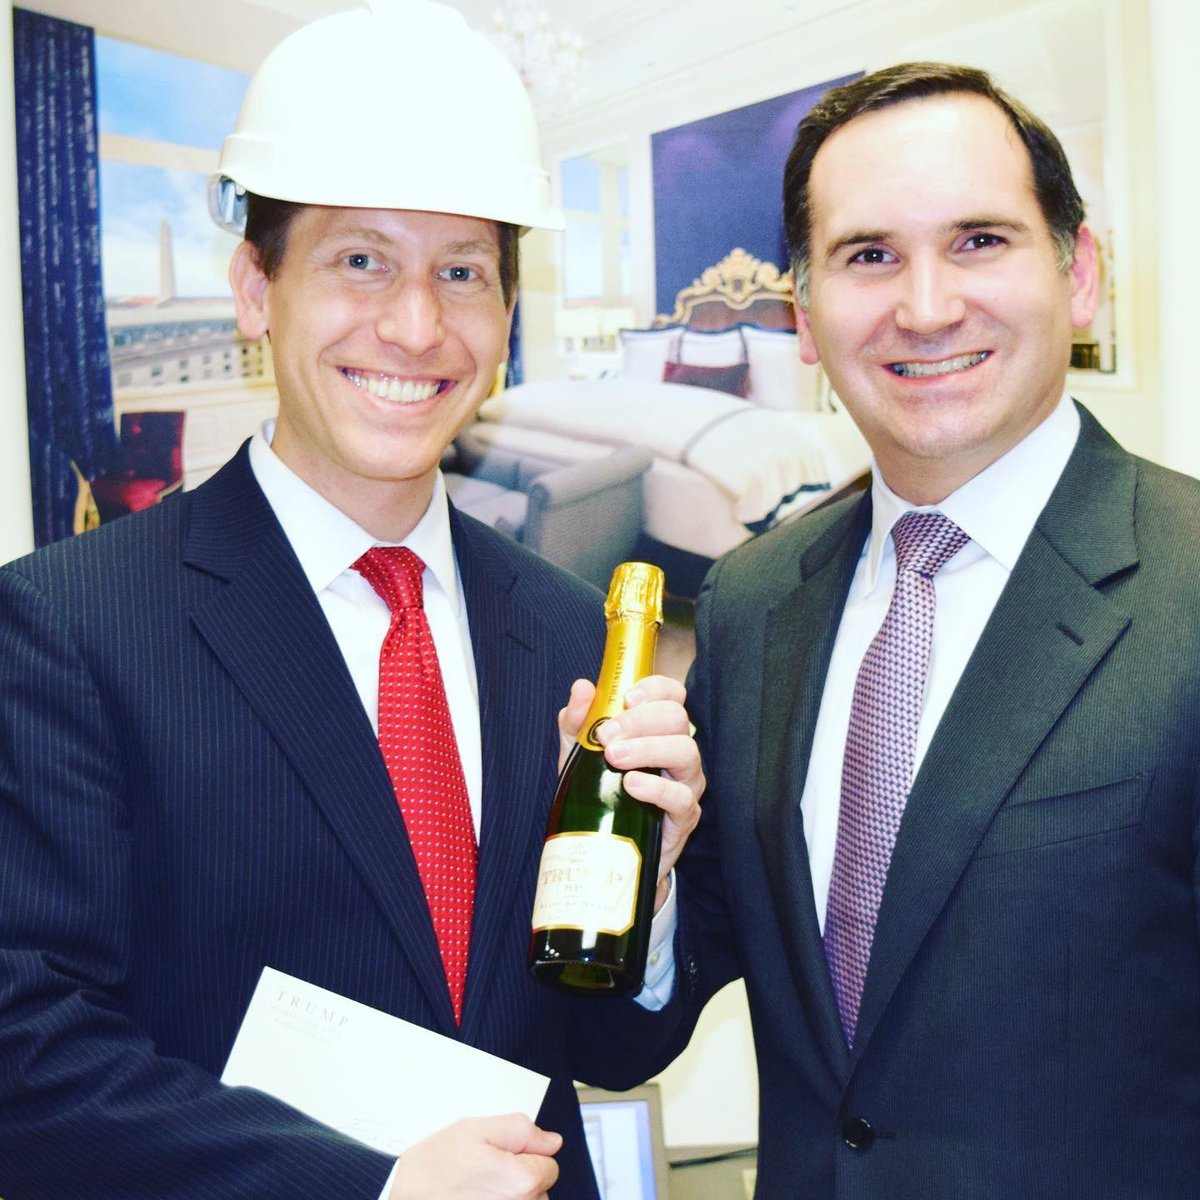 Excited to announce the return of Eric Horovitz to @TrumpDC Eric was key to the success of our Sales Department when we opened our doors and I am thrilled to welcome him back to our team...#bestteam #success #teamwork #sales #goal #neversettle #washingtondc #trump